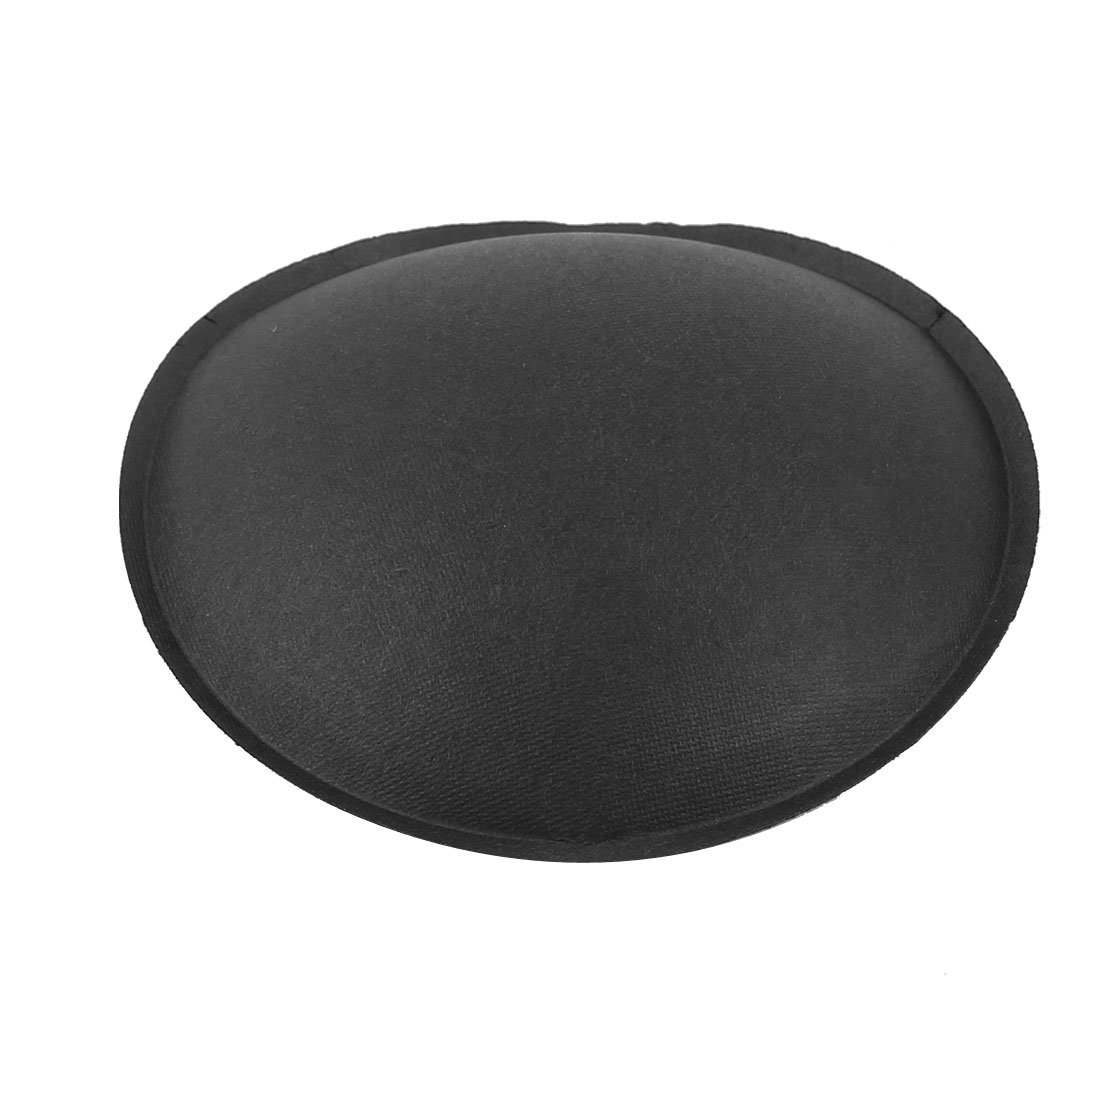 90mm Dia Dome Shape Audio Speaker Loudspeaker Subwoofer Dustproof Cover Cap